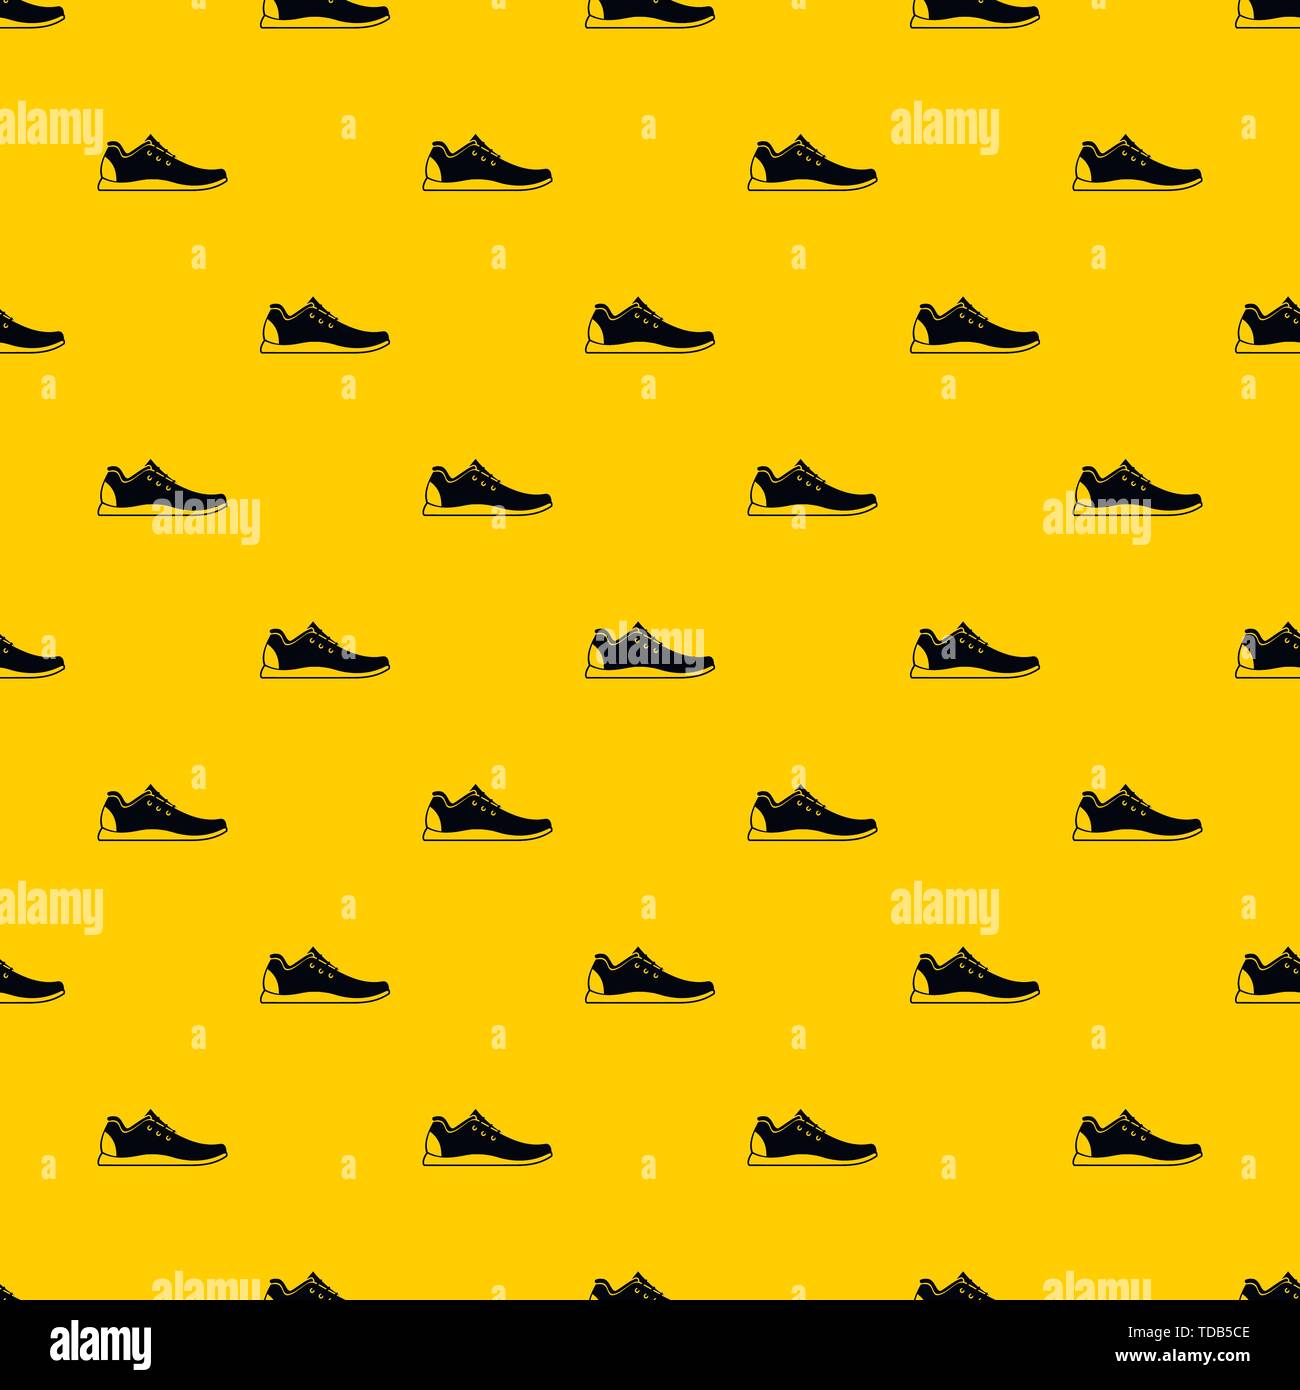 Athletic shoe pattern vector - Stock Image